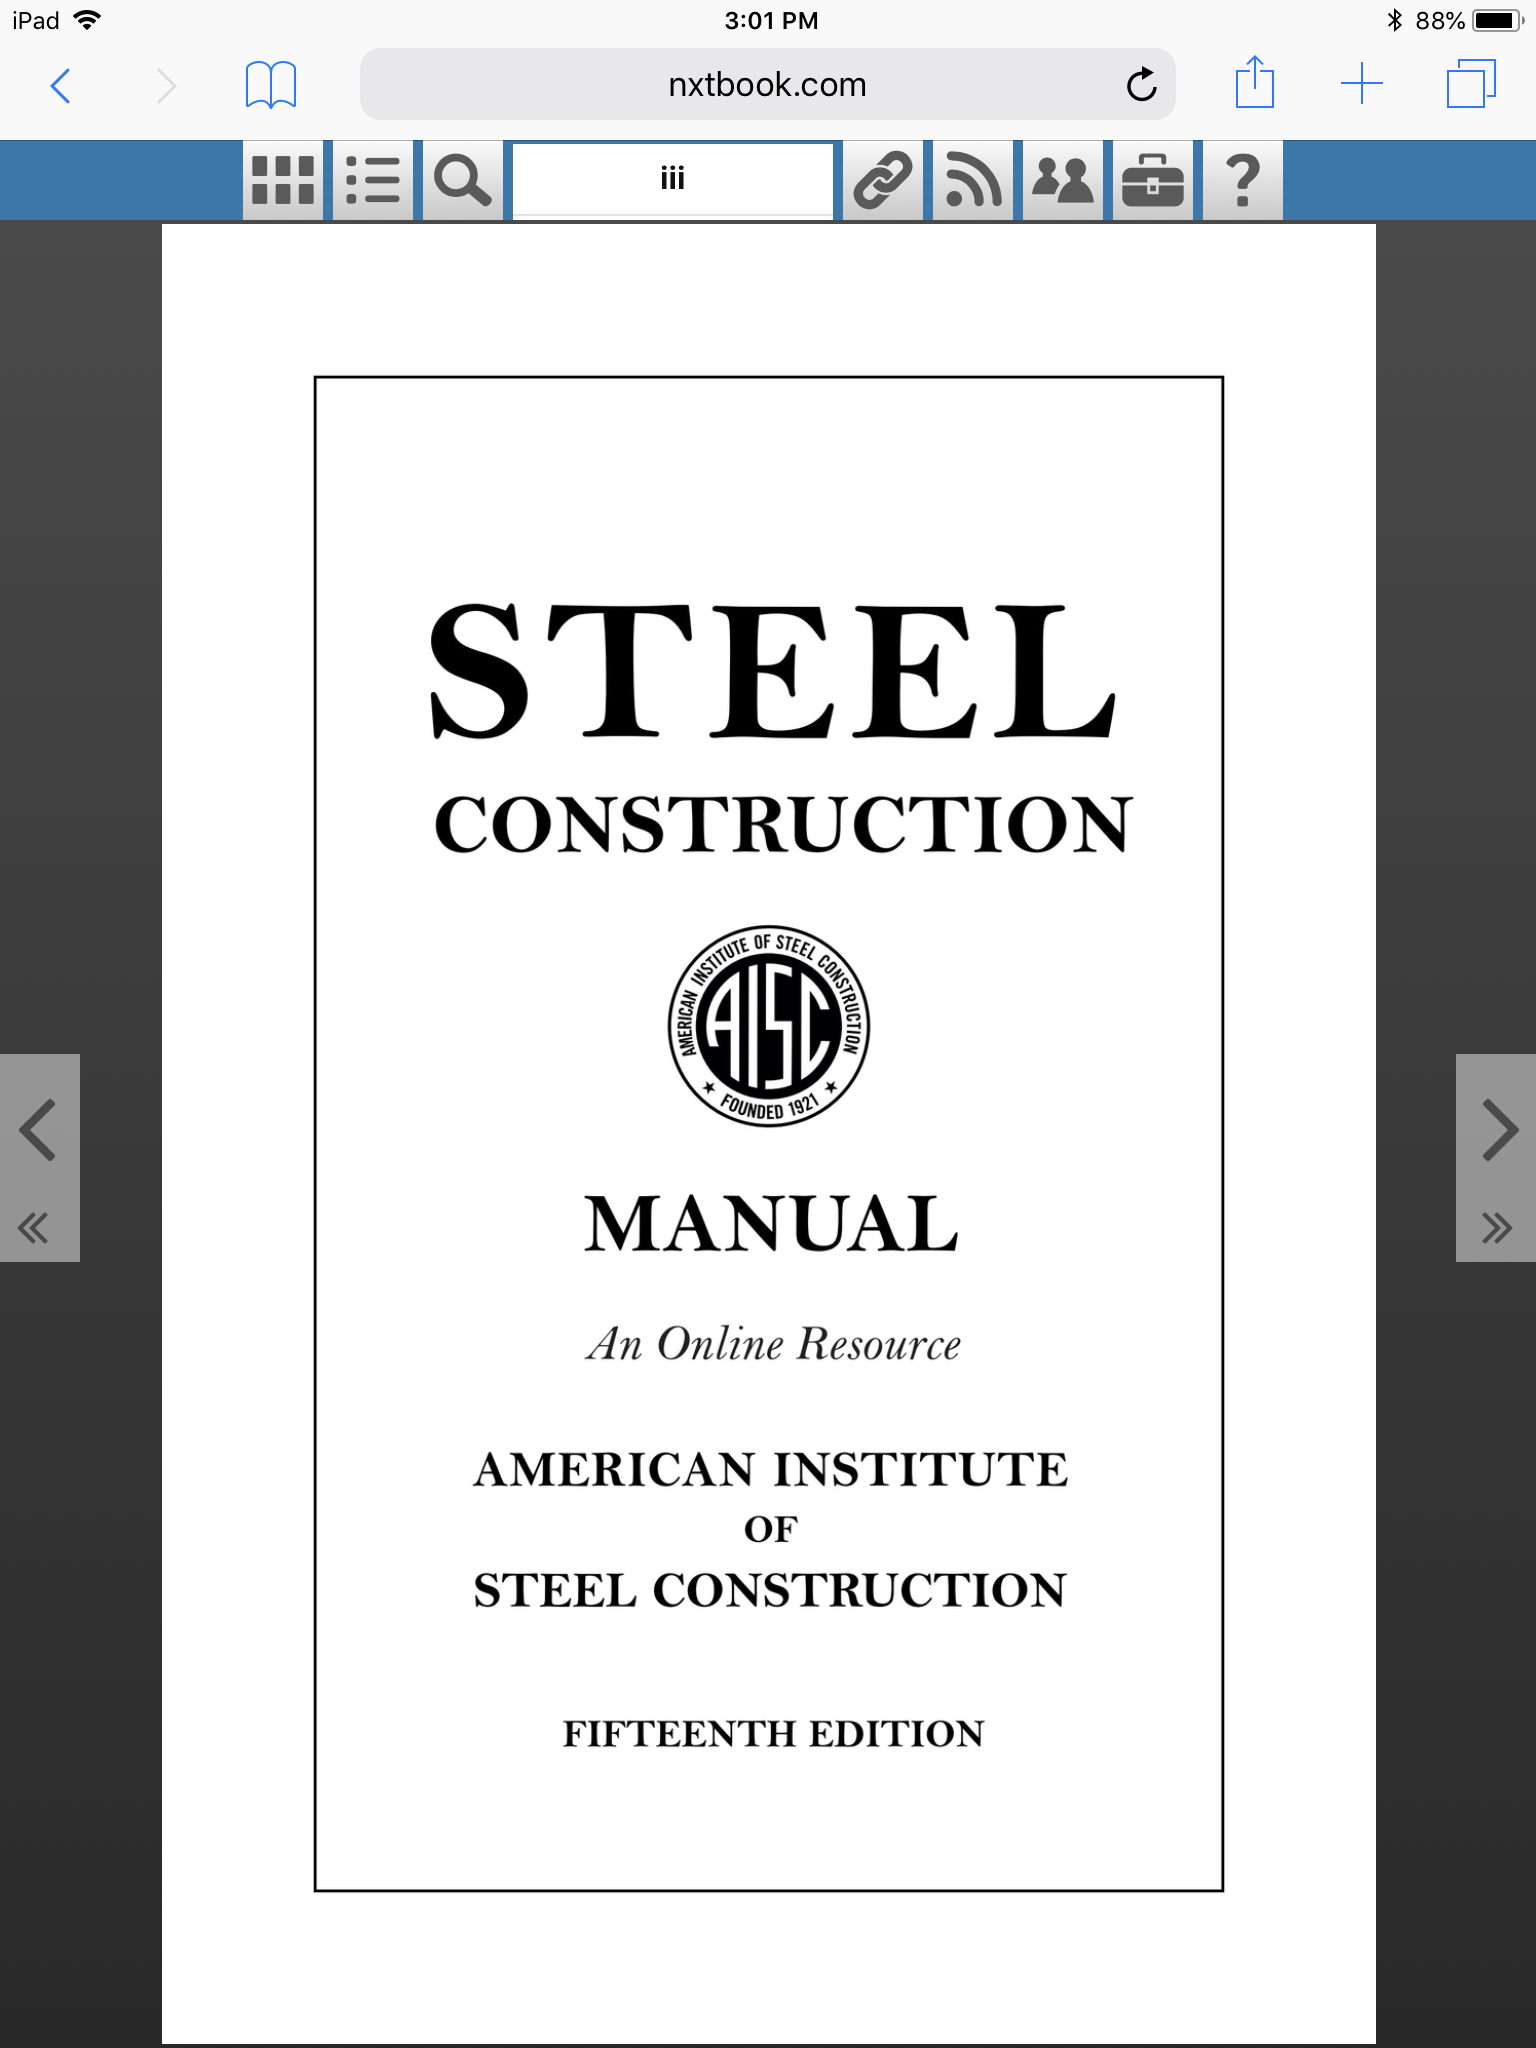 AISC title page from website